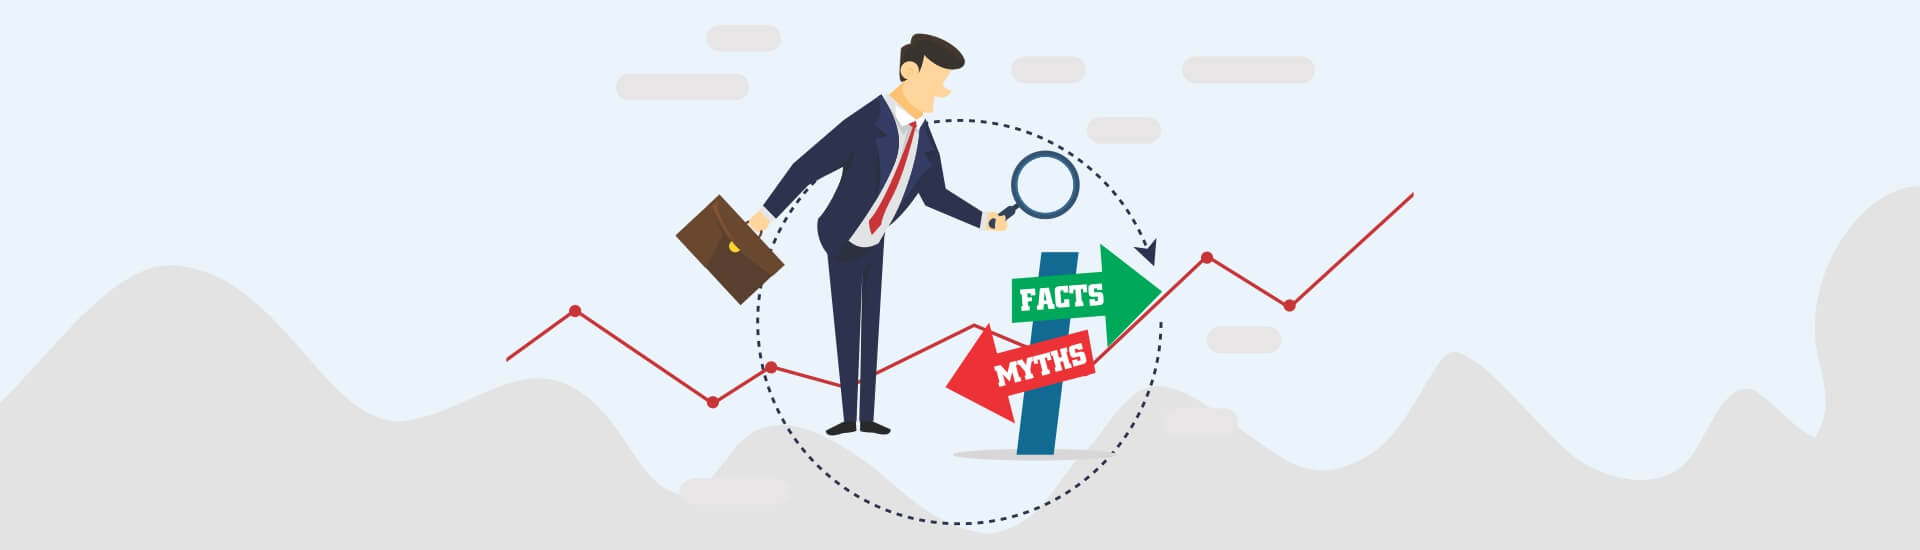 Debunk the Myths of Mutual Funds